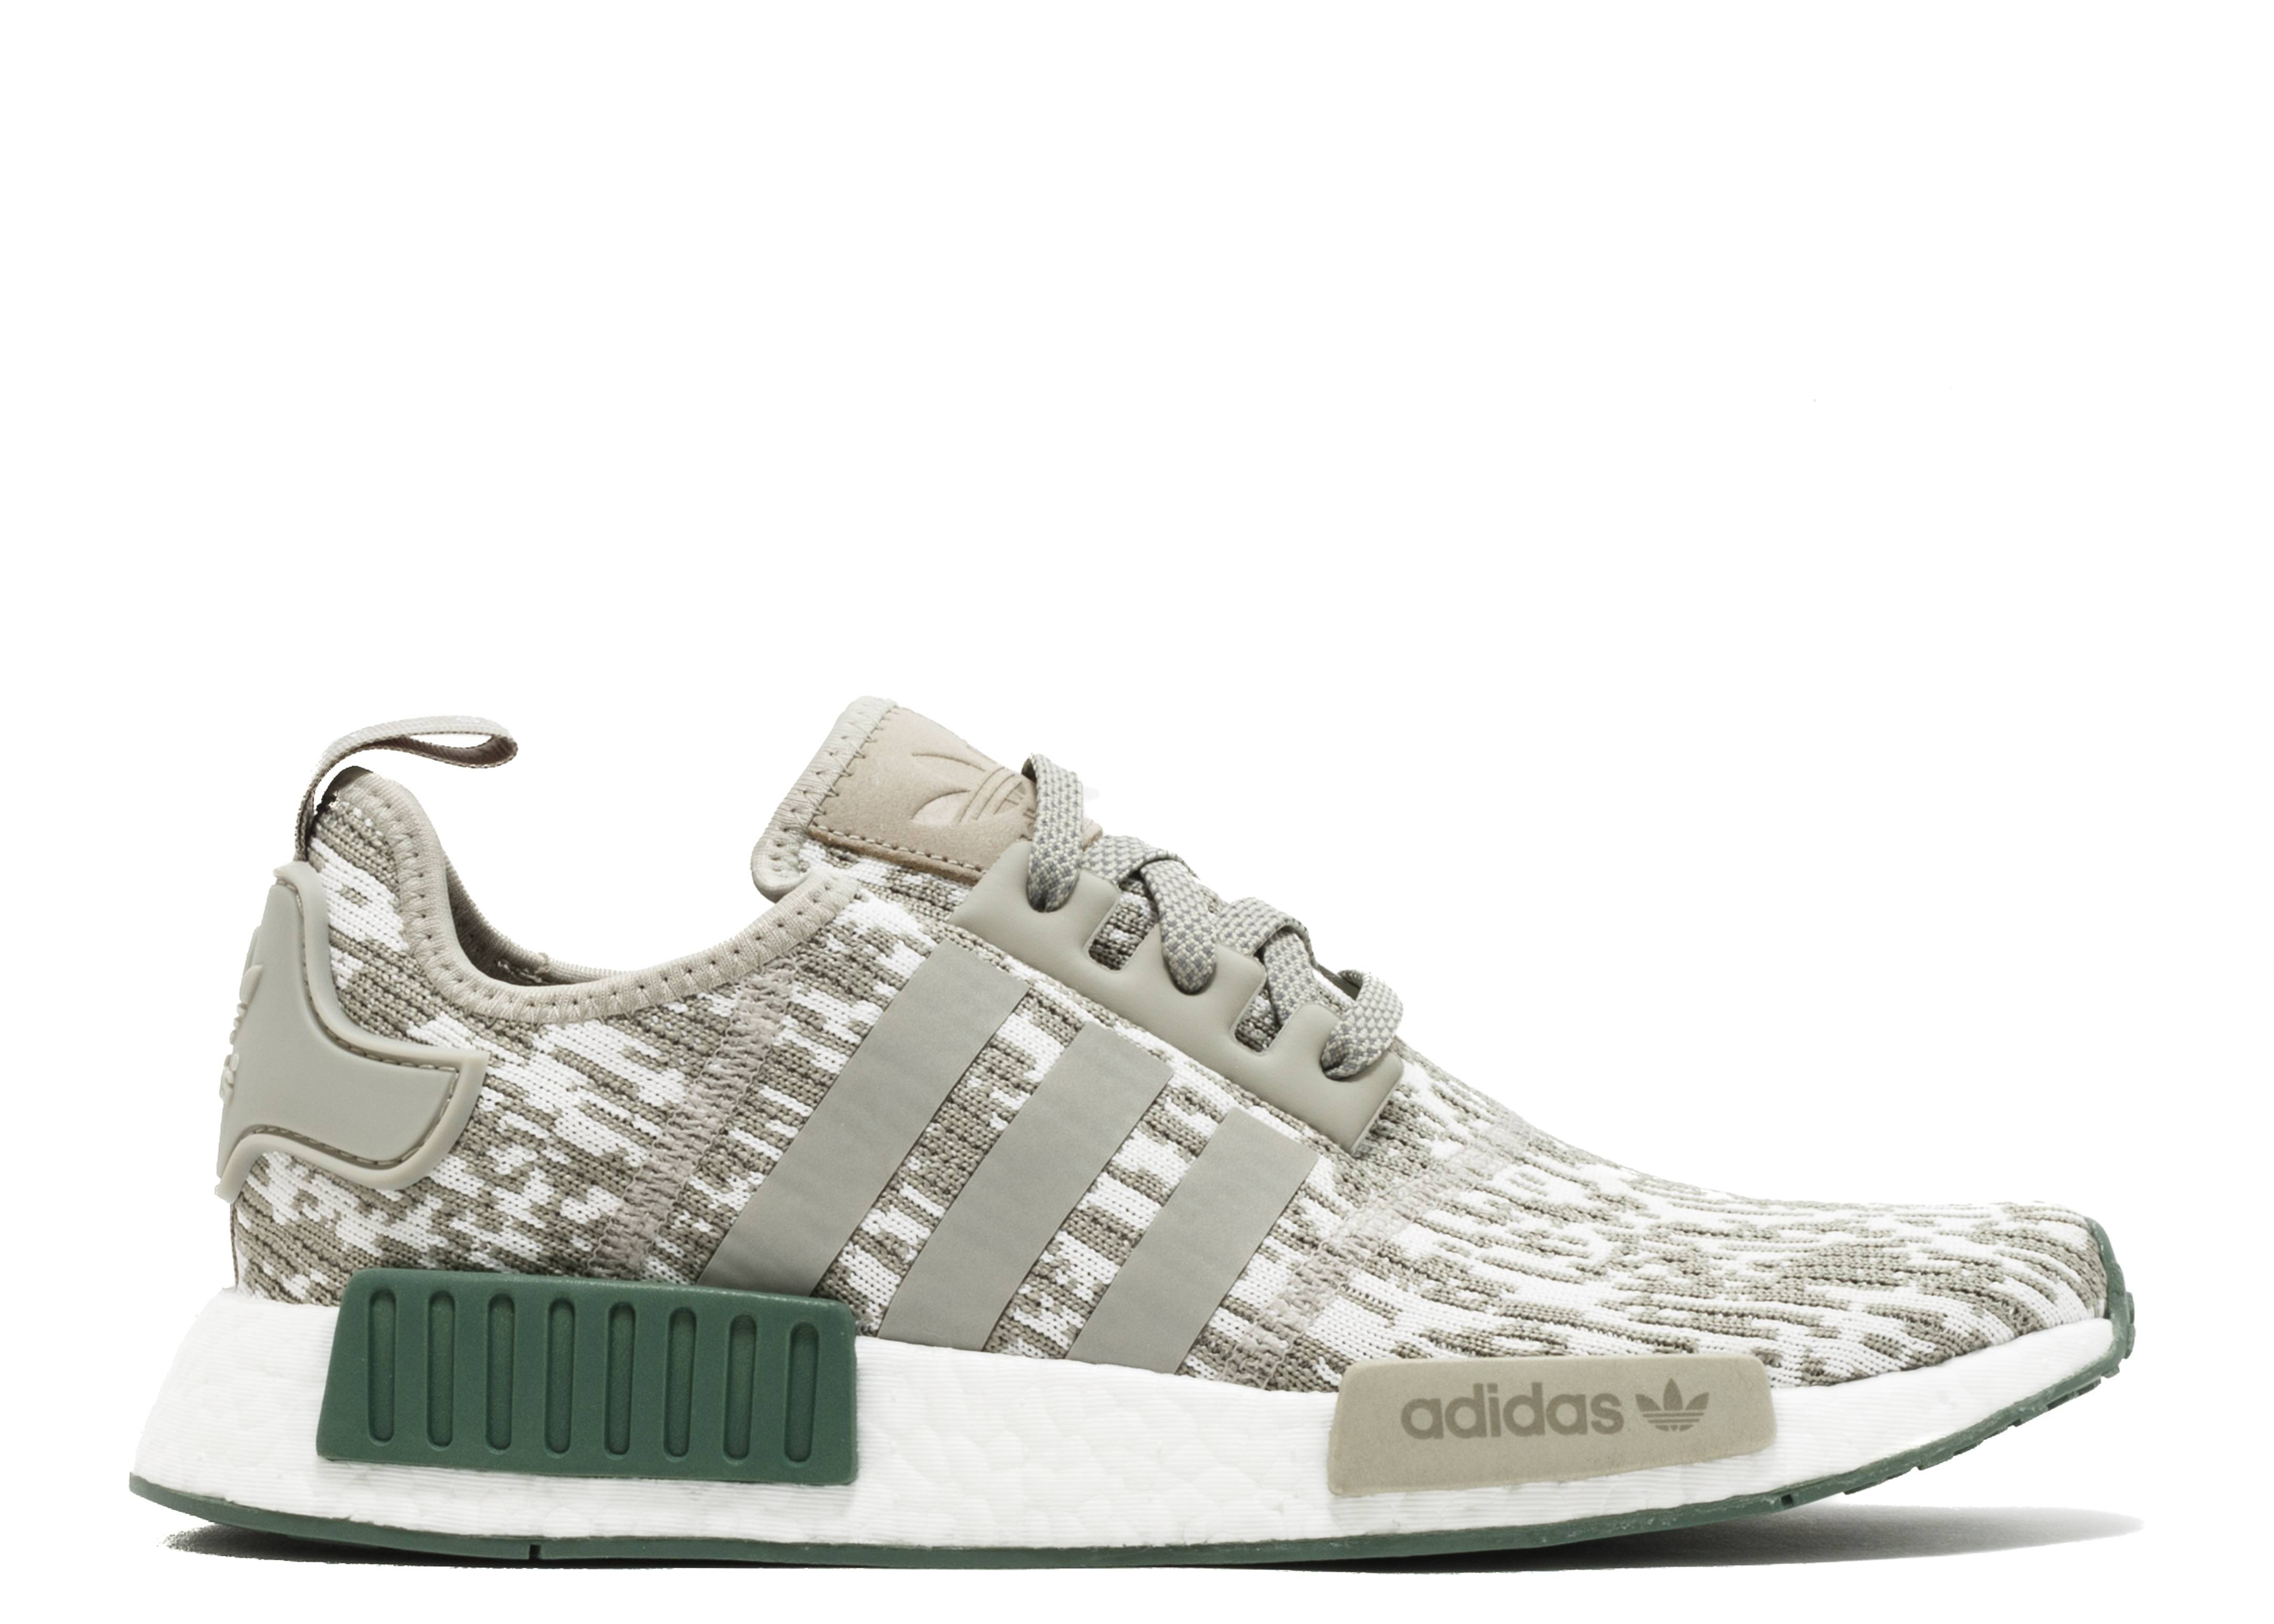 adidas NMD R1 'Sesame' - CQ0860 - Size 9.5 - azonJqn